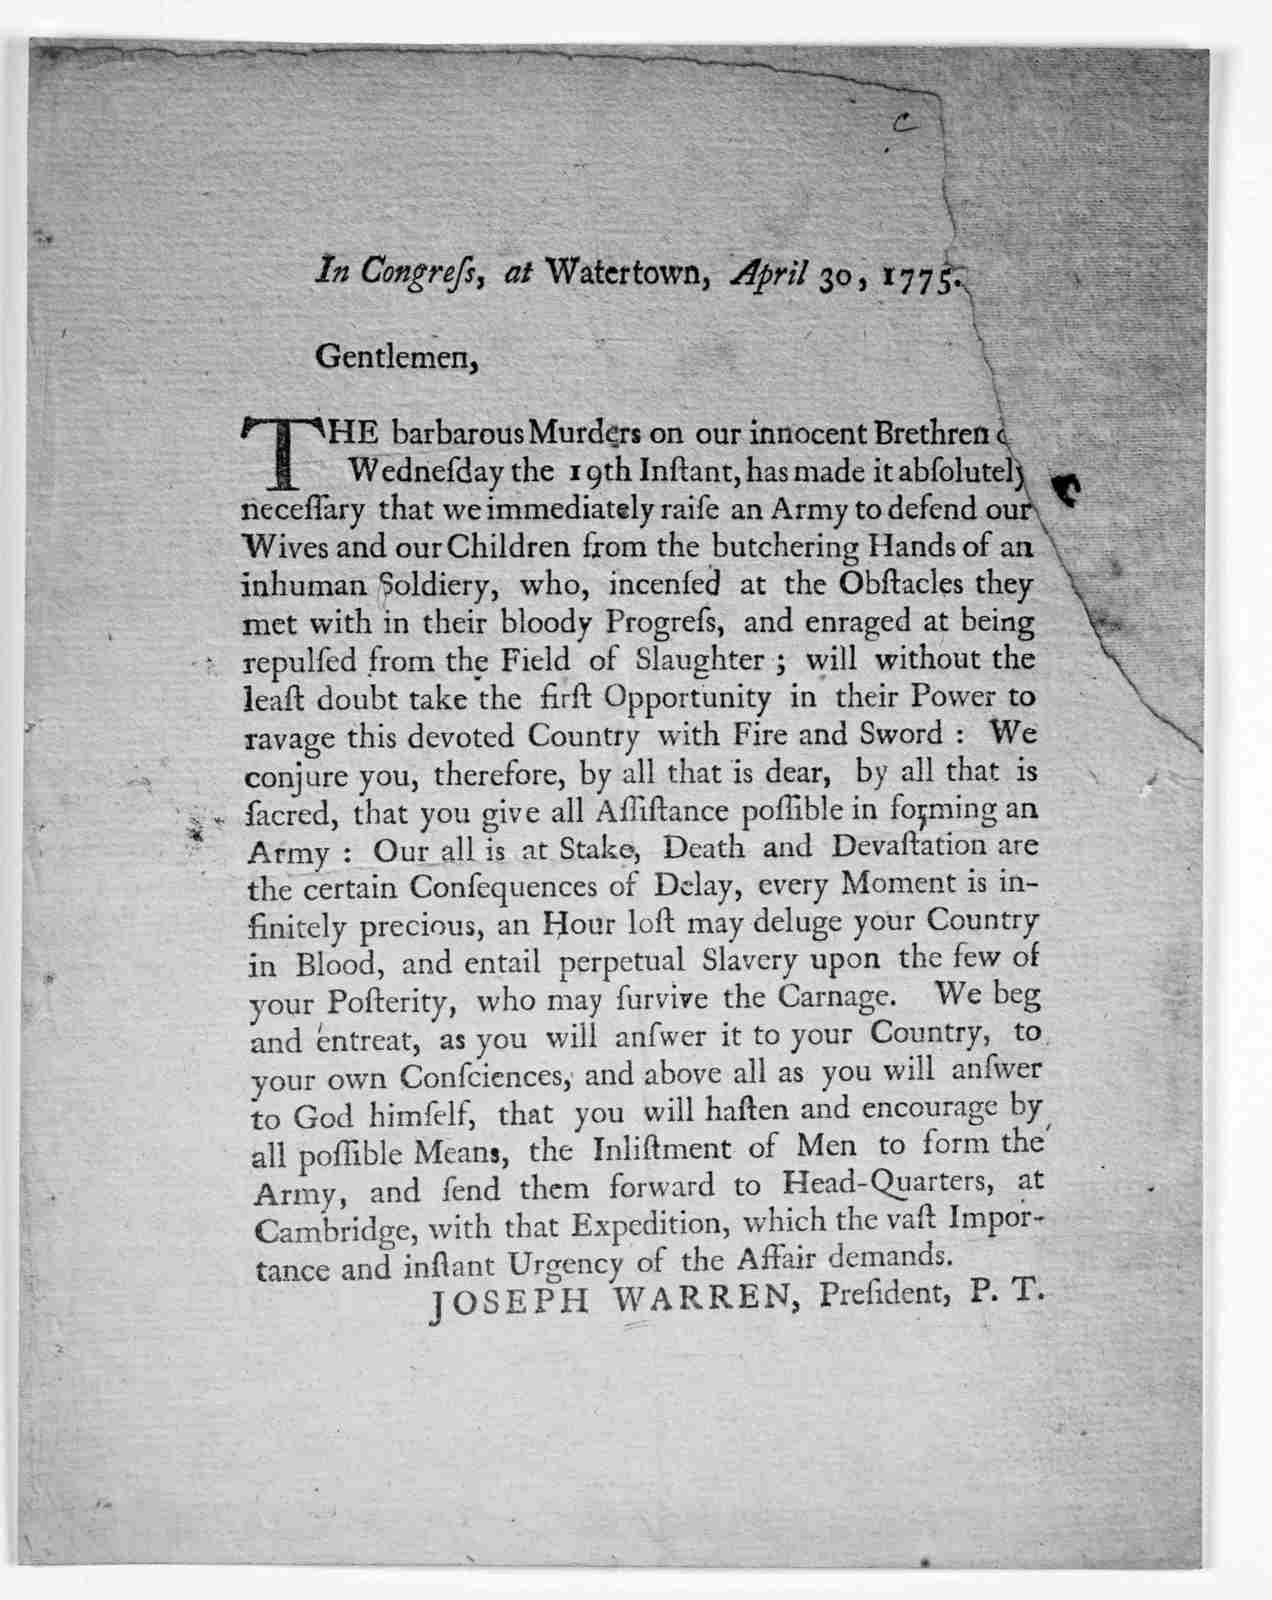 In Congress, at Watertown, April 30, 1775. Gentlemen, The barbarous murders on our innocent brethren on Wednesday the 19th instant, has made it absolutely necessary that we immediately raise an army to defend our wives and our children from the